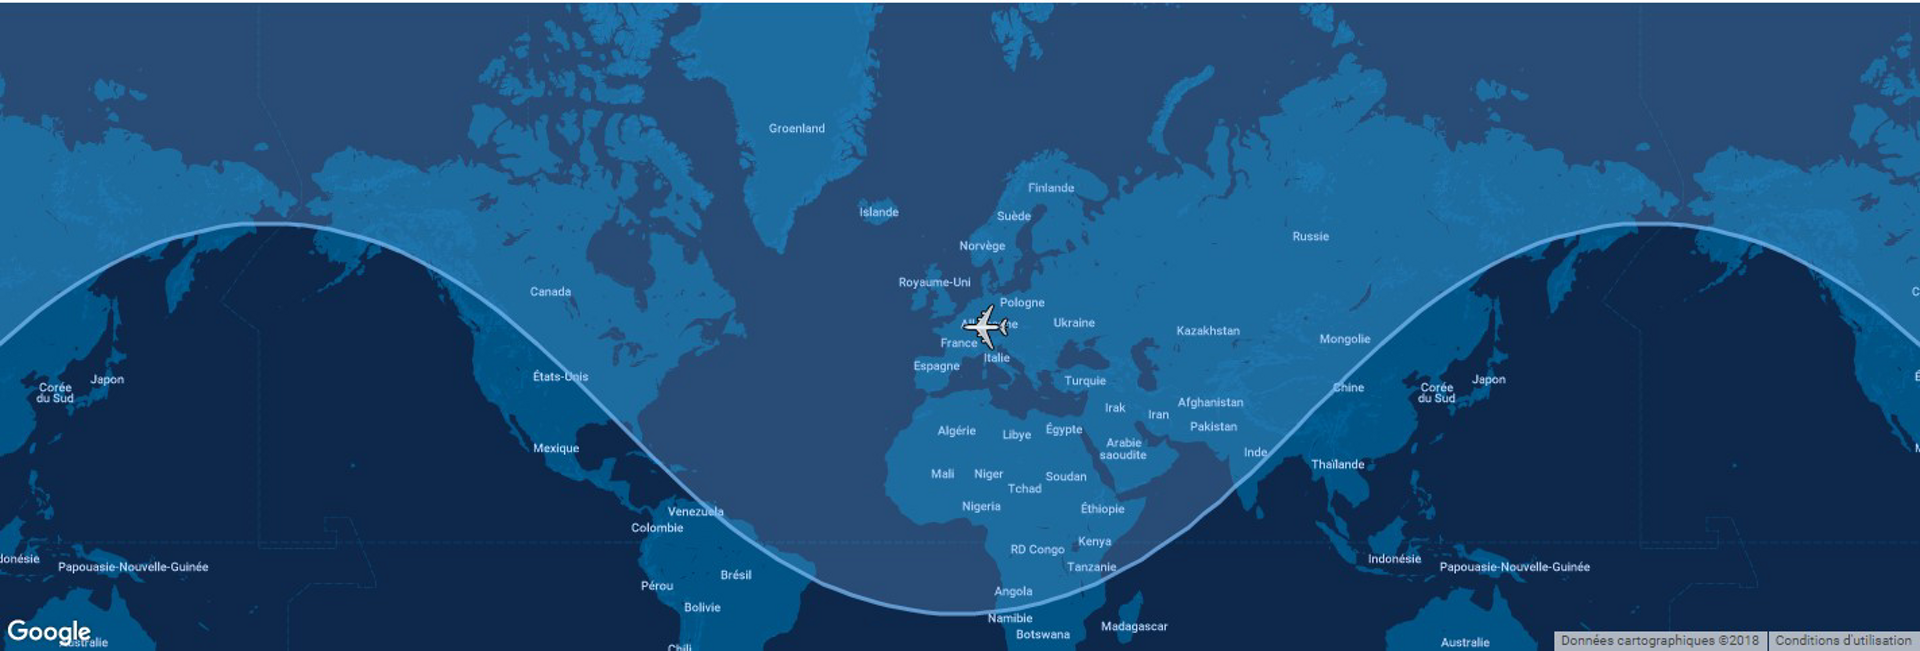 Overlaid on a global map, the typical range for Airbus' A300-600F is shown in this diagram.